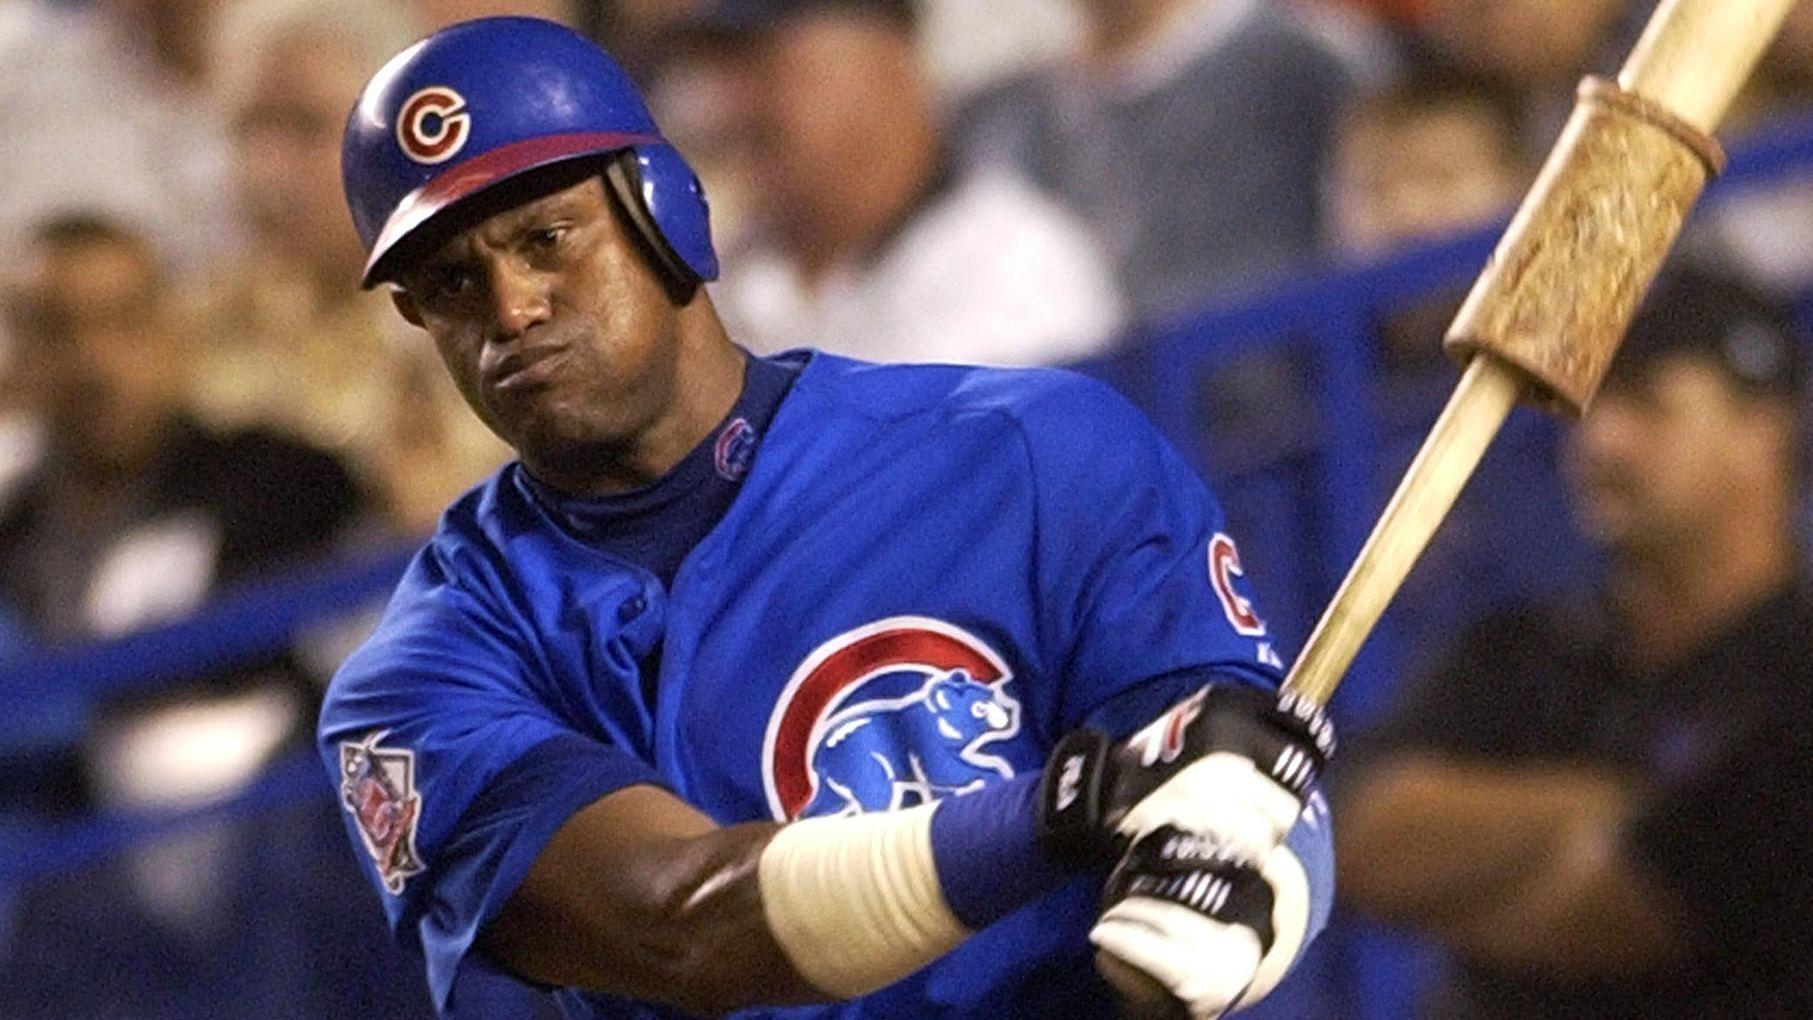 White People Be Like Who Is Sosa Sammy Sosa would welco...